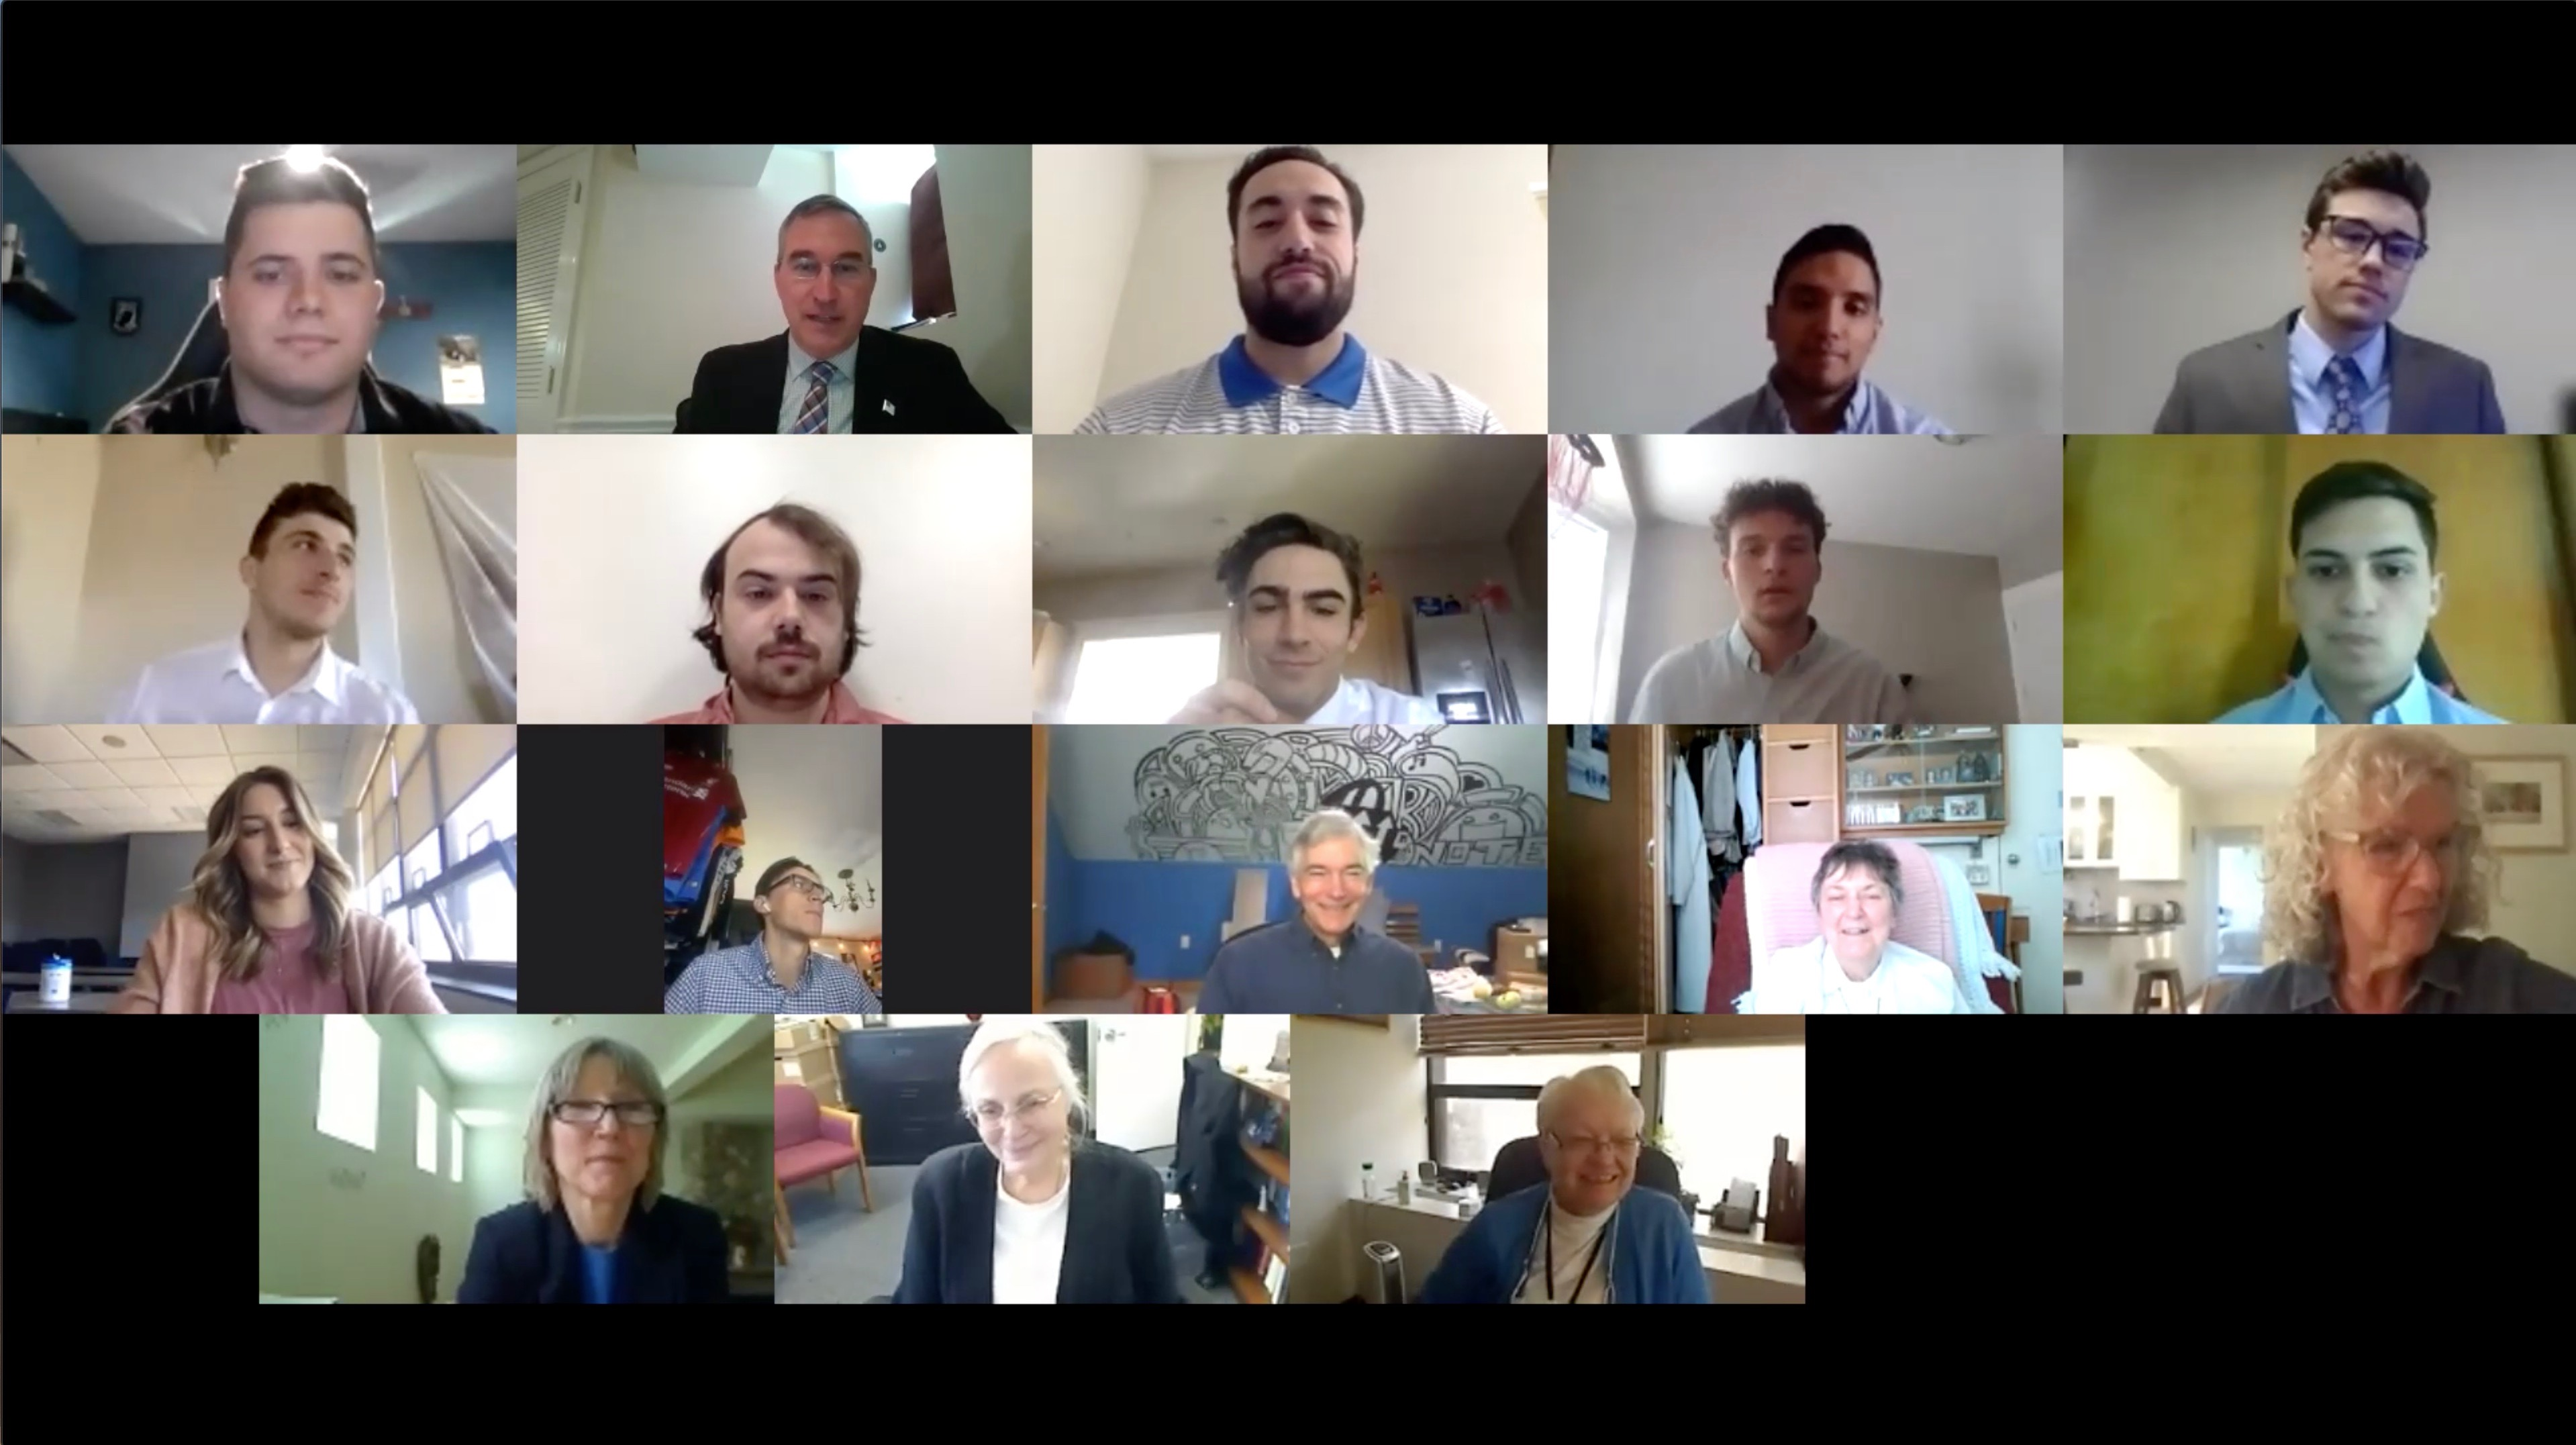 Screenshot of the Zoom meeting with the students, faculty, and RJM sisters in each video square.